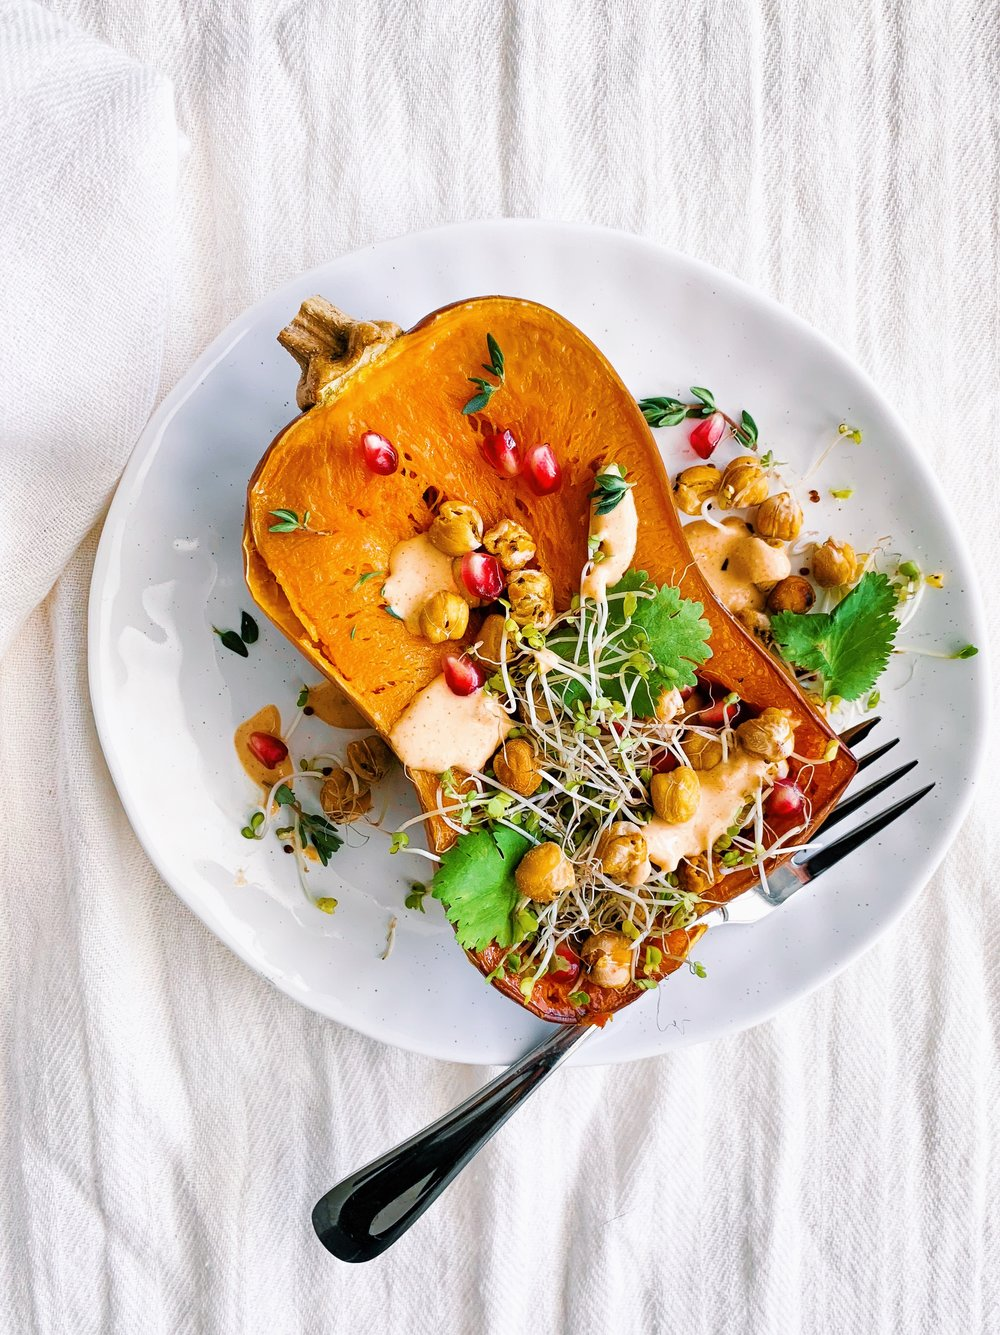 Honeynut squash with crispy chickpeas, citrus tahini dressing, pomegranate, herbs, and sprouts! A delicious plant based dinner!